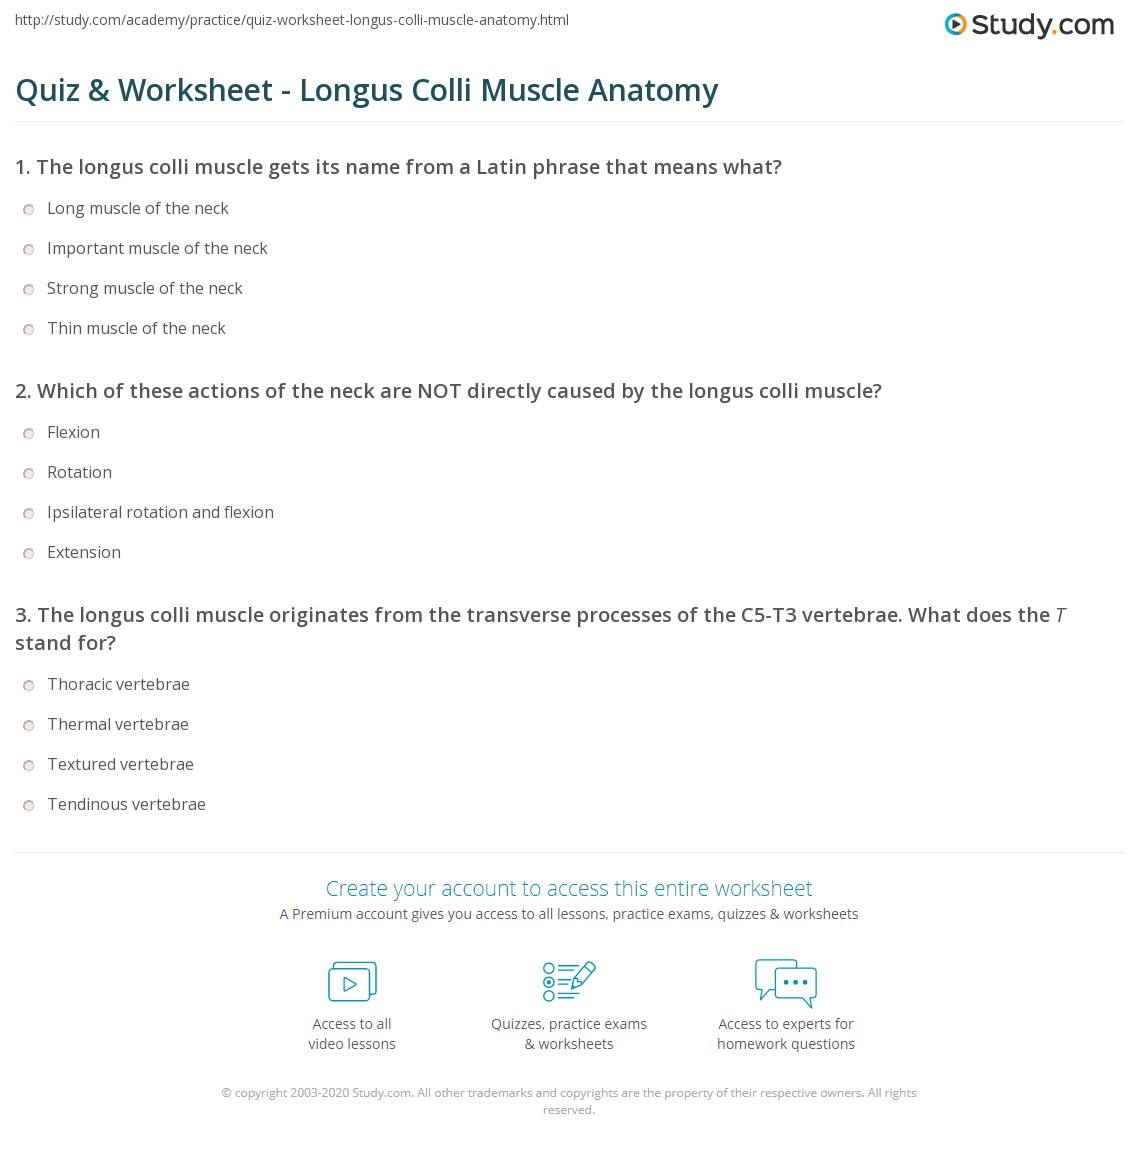 Quiz Worksheet Longus Colli Muscle Anatomy Study